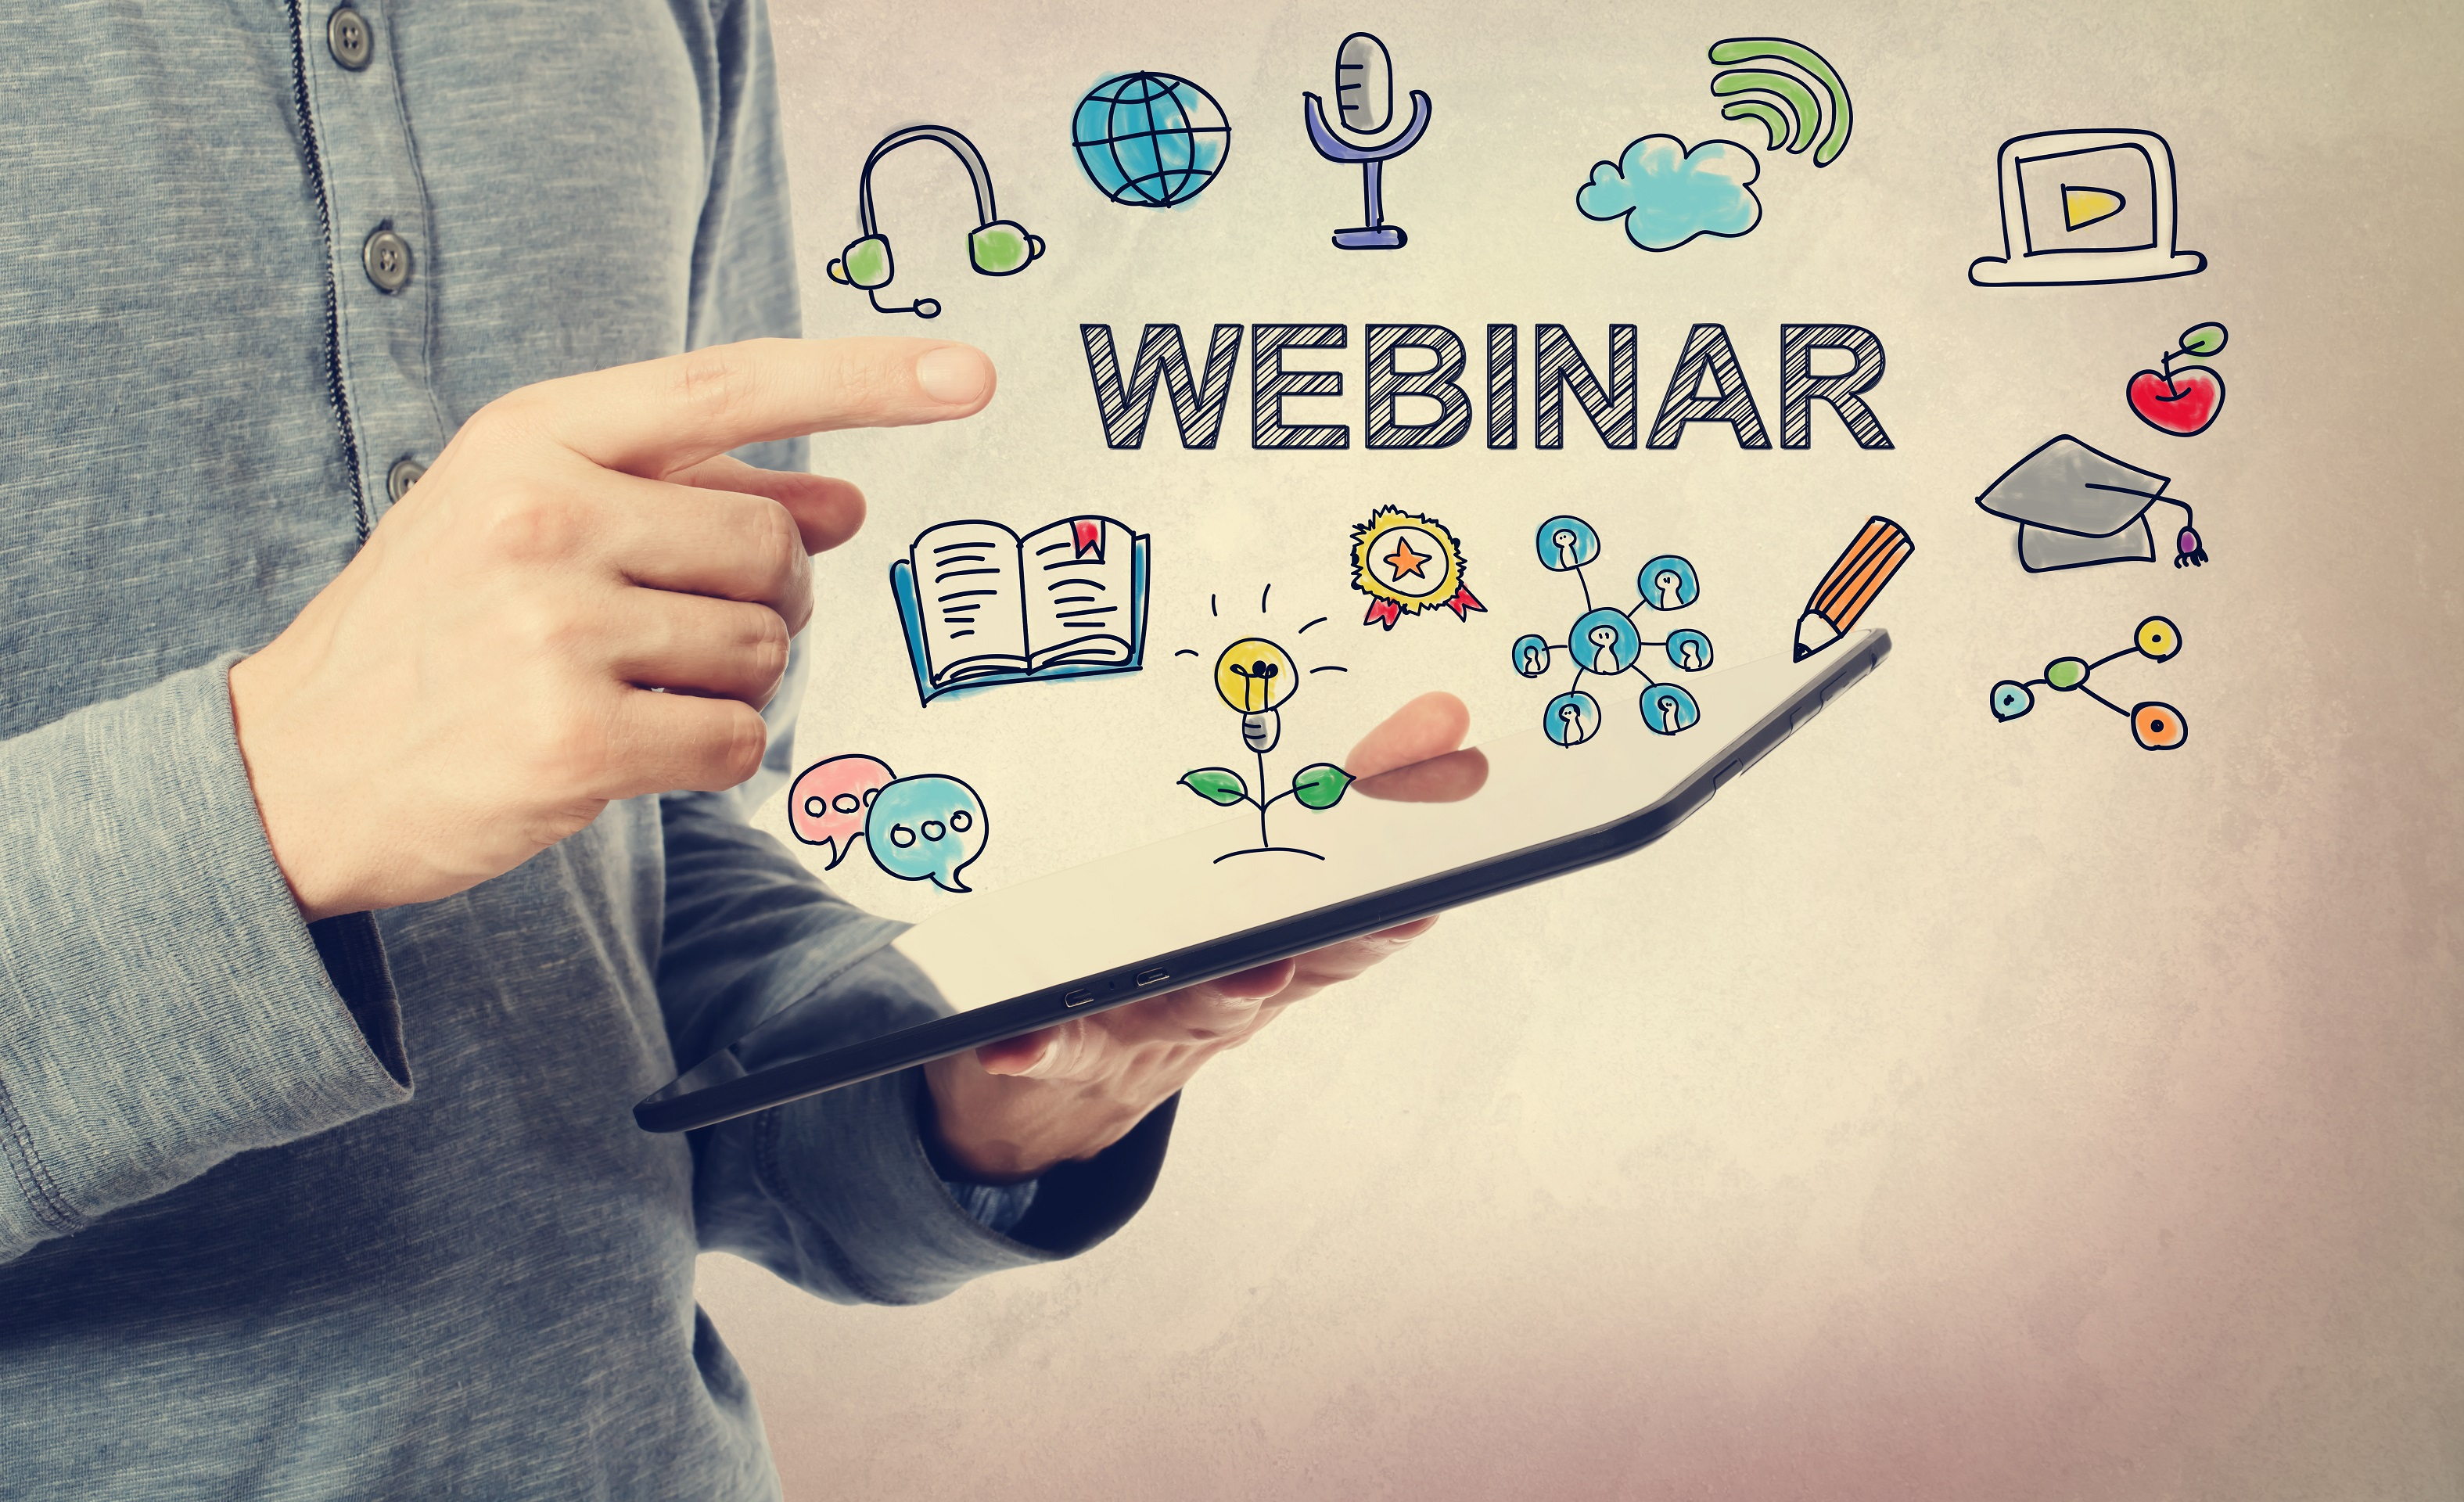 Person holding tablet surrounded by webinar icons